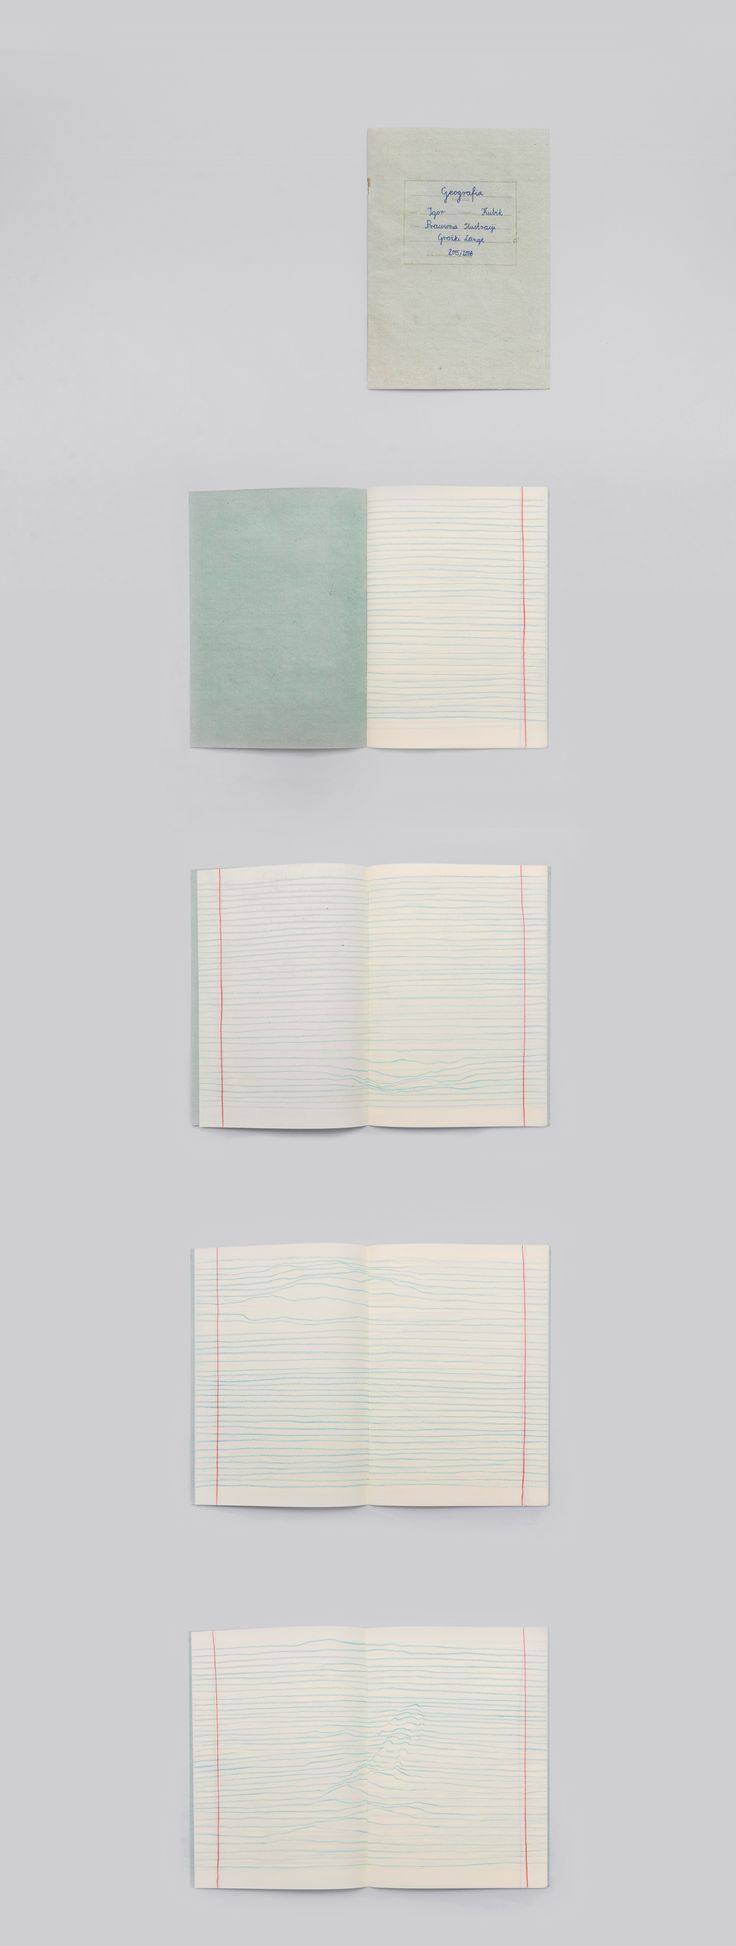 This is a short personal story of depression written on 16 notebook pages. Book design Igor Kubik